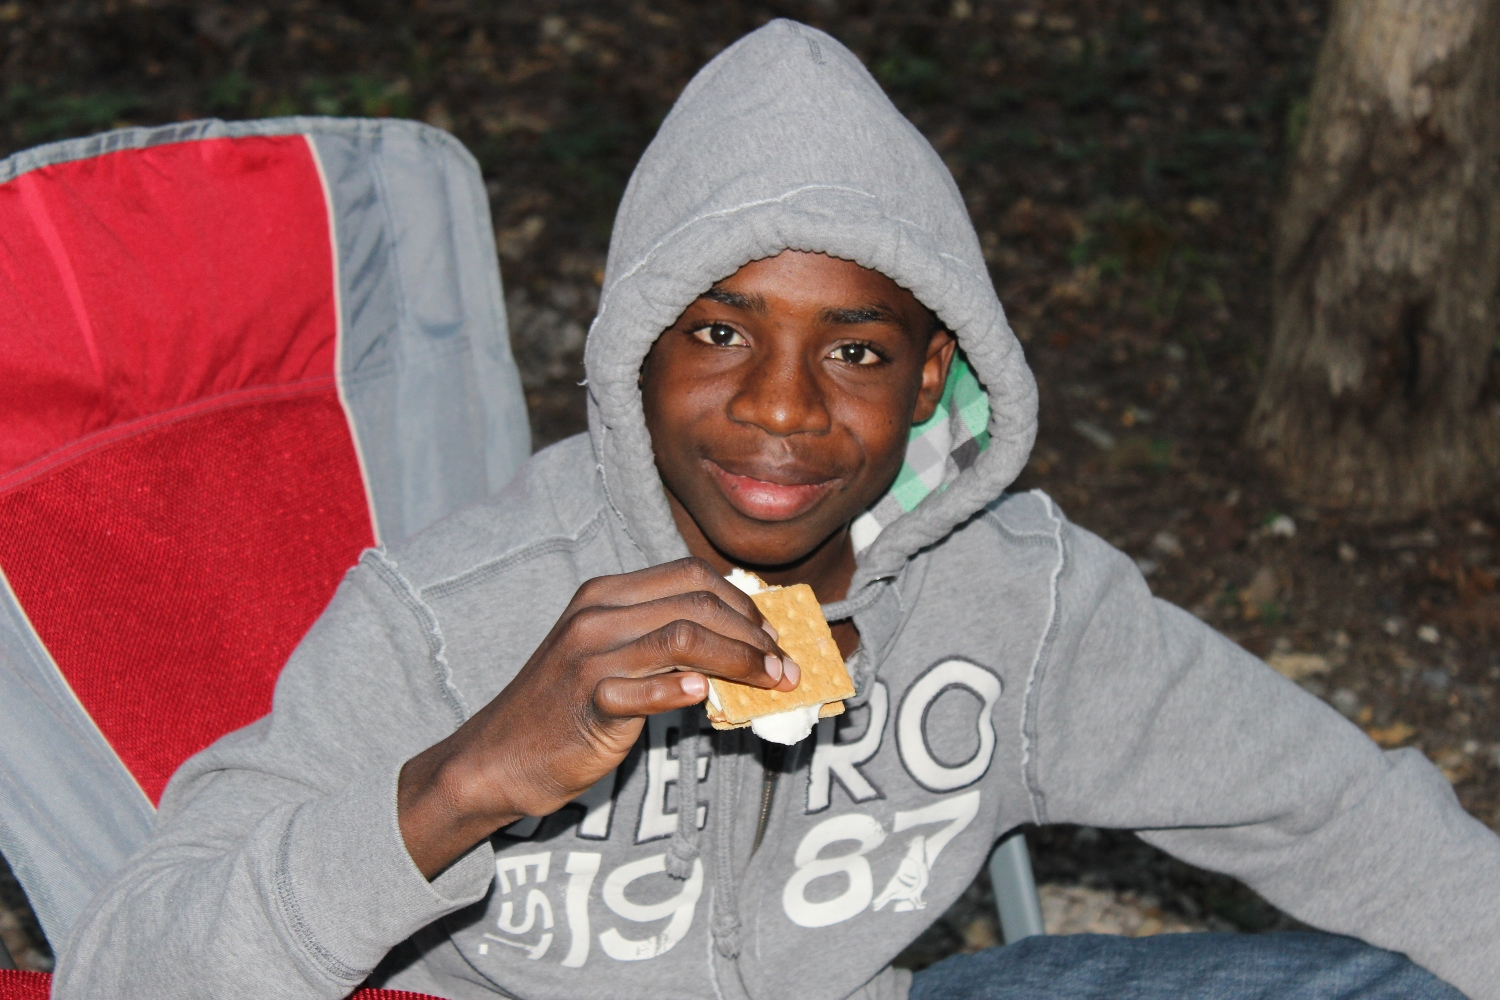 Young black boy smiling holding a s'more